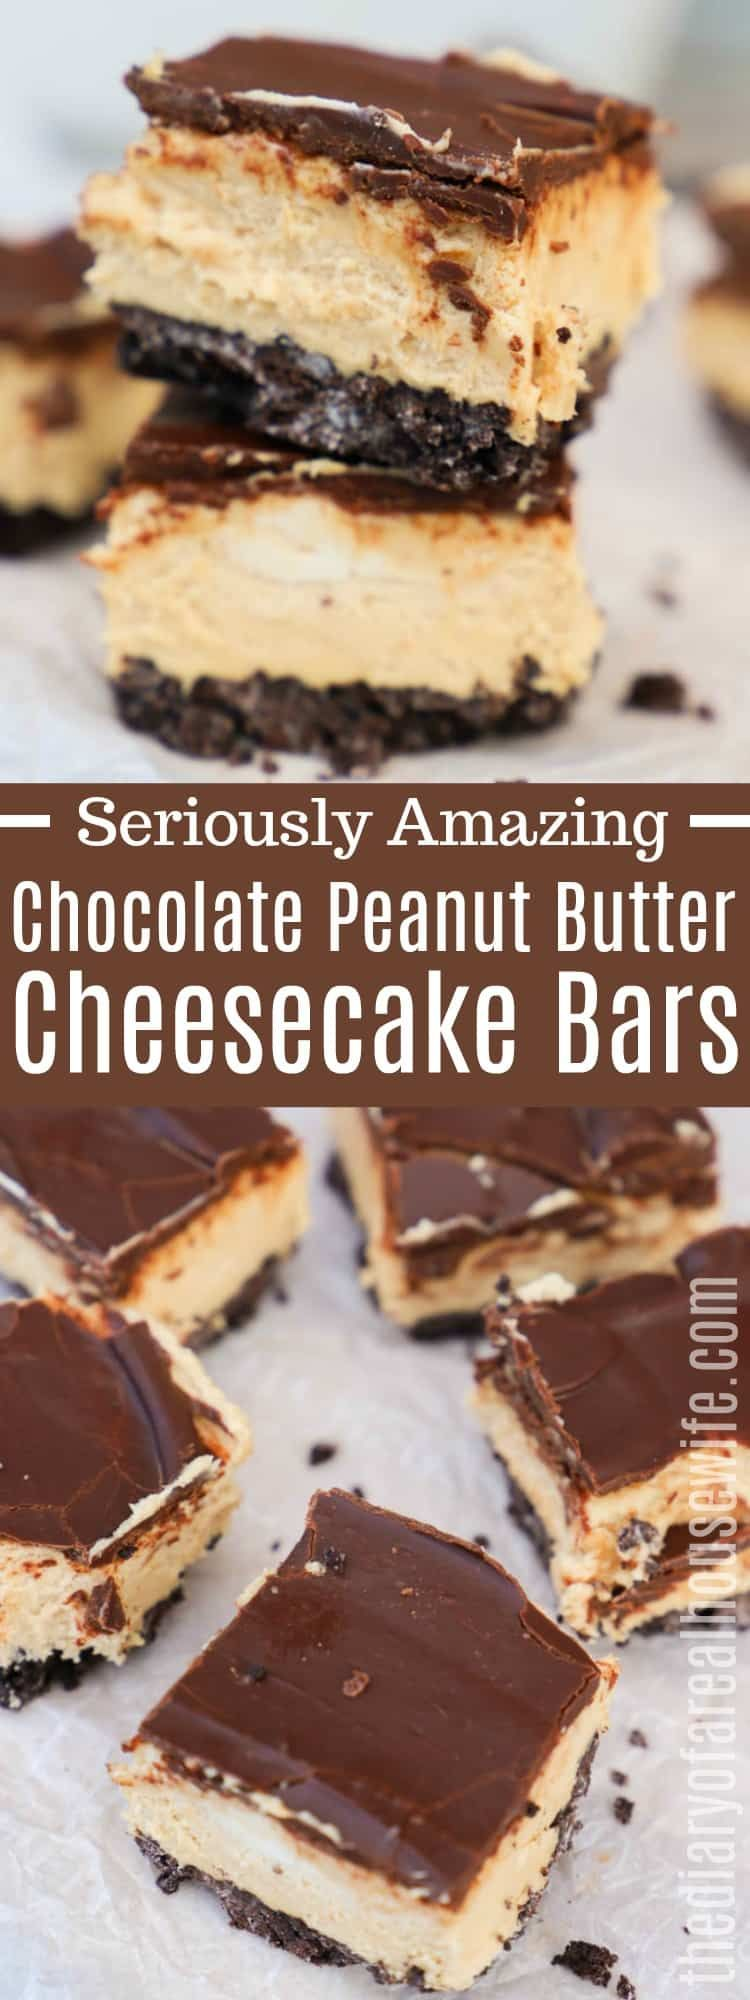 Chocolate Peanut Butter Cheesecake Bars - The Diary of a Real Housewife #peanutbuttersquares